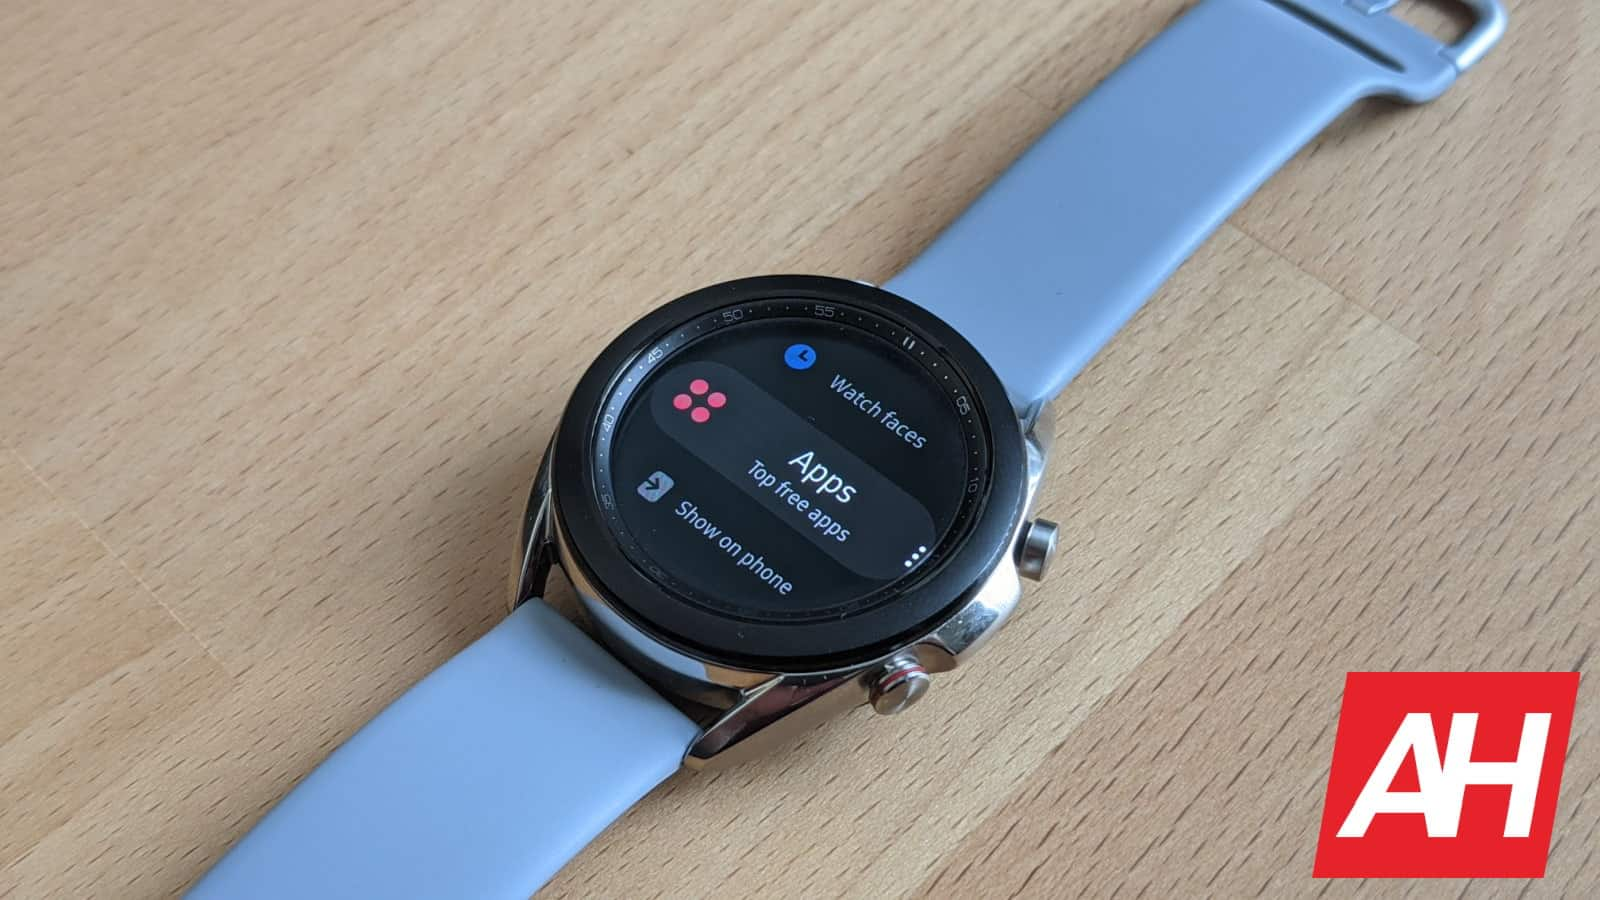 Another Source Claims The Galaxy Watch 4 Will Ship With Wear OS